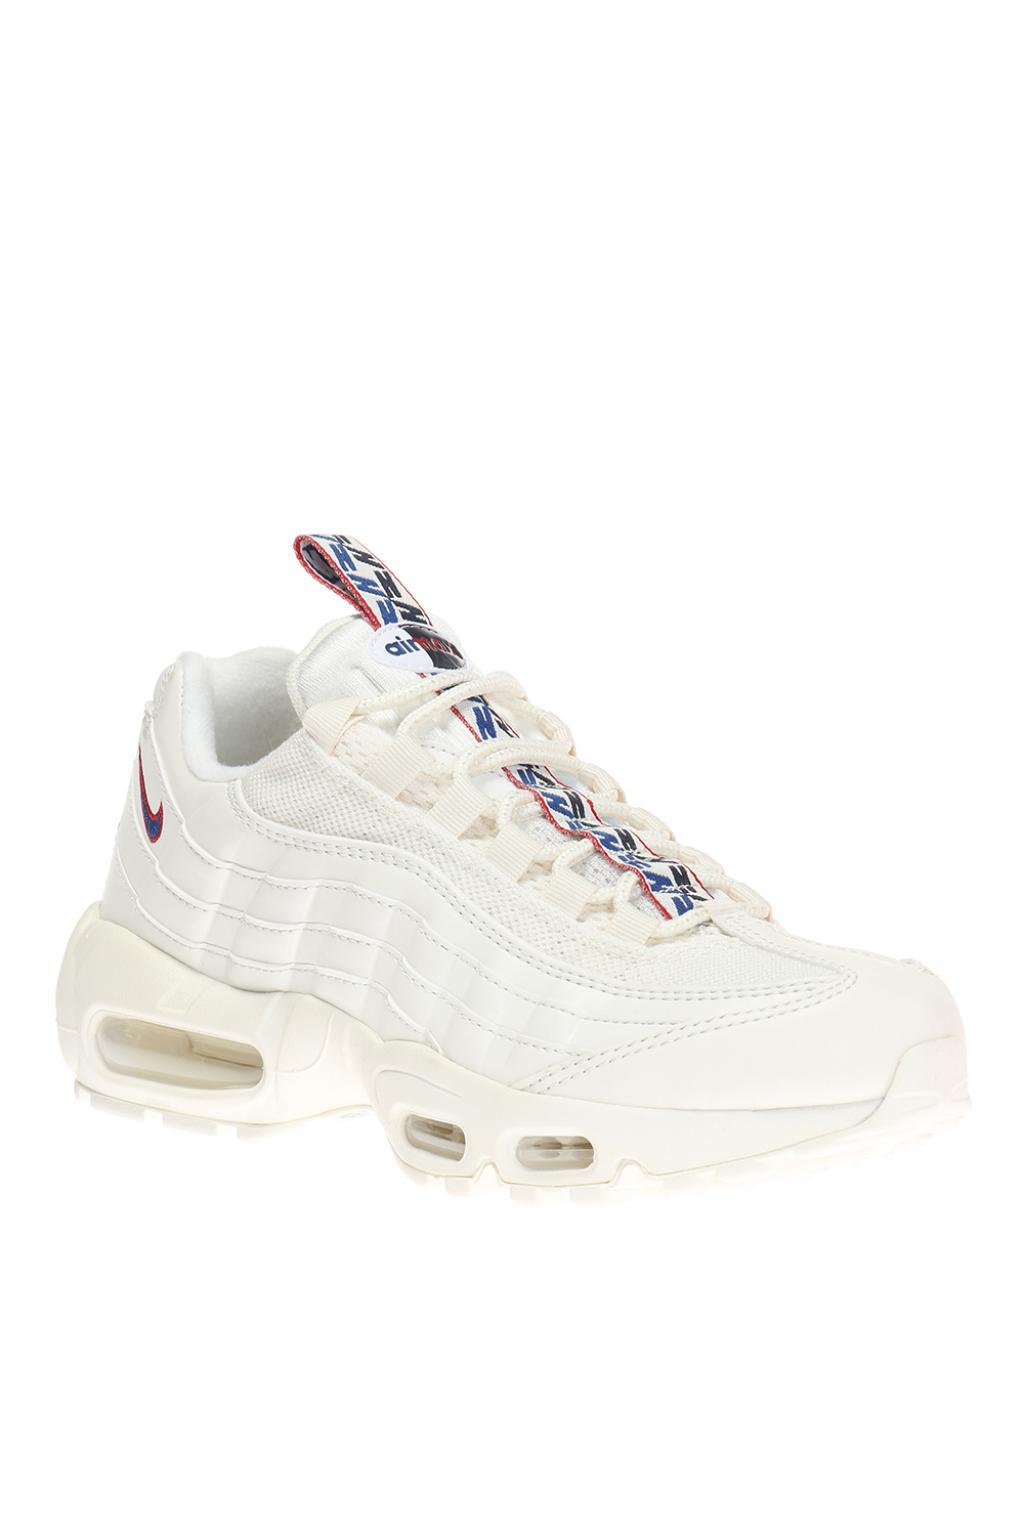 Nike Rubber 'air Max 95 Tt' Sneakers in White for Men - Lyst